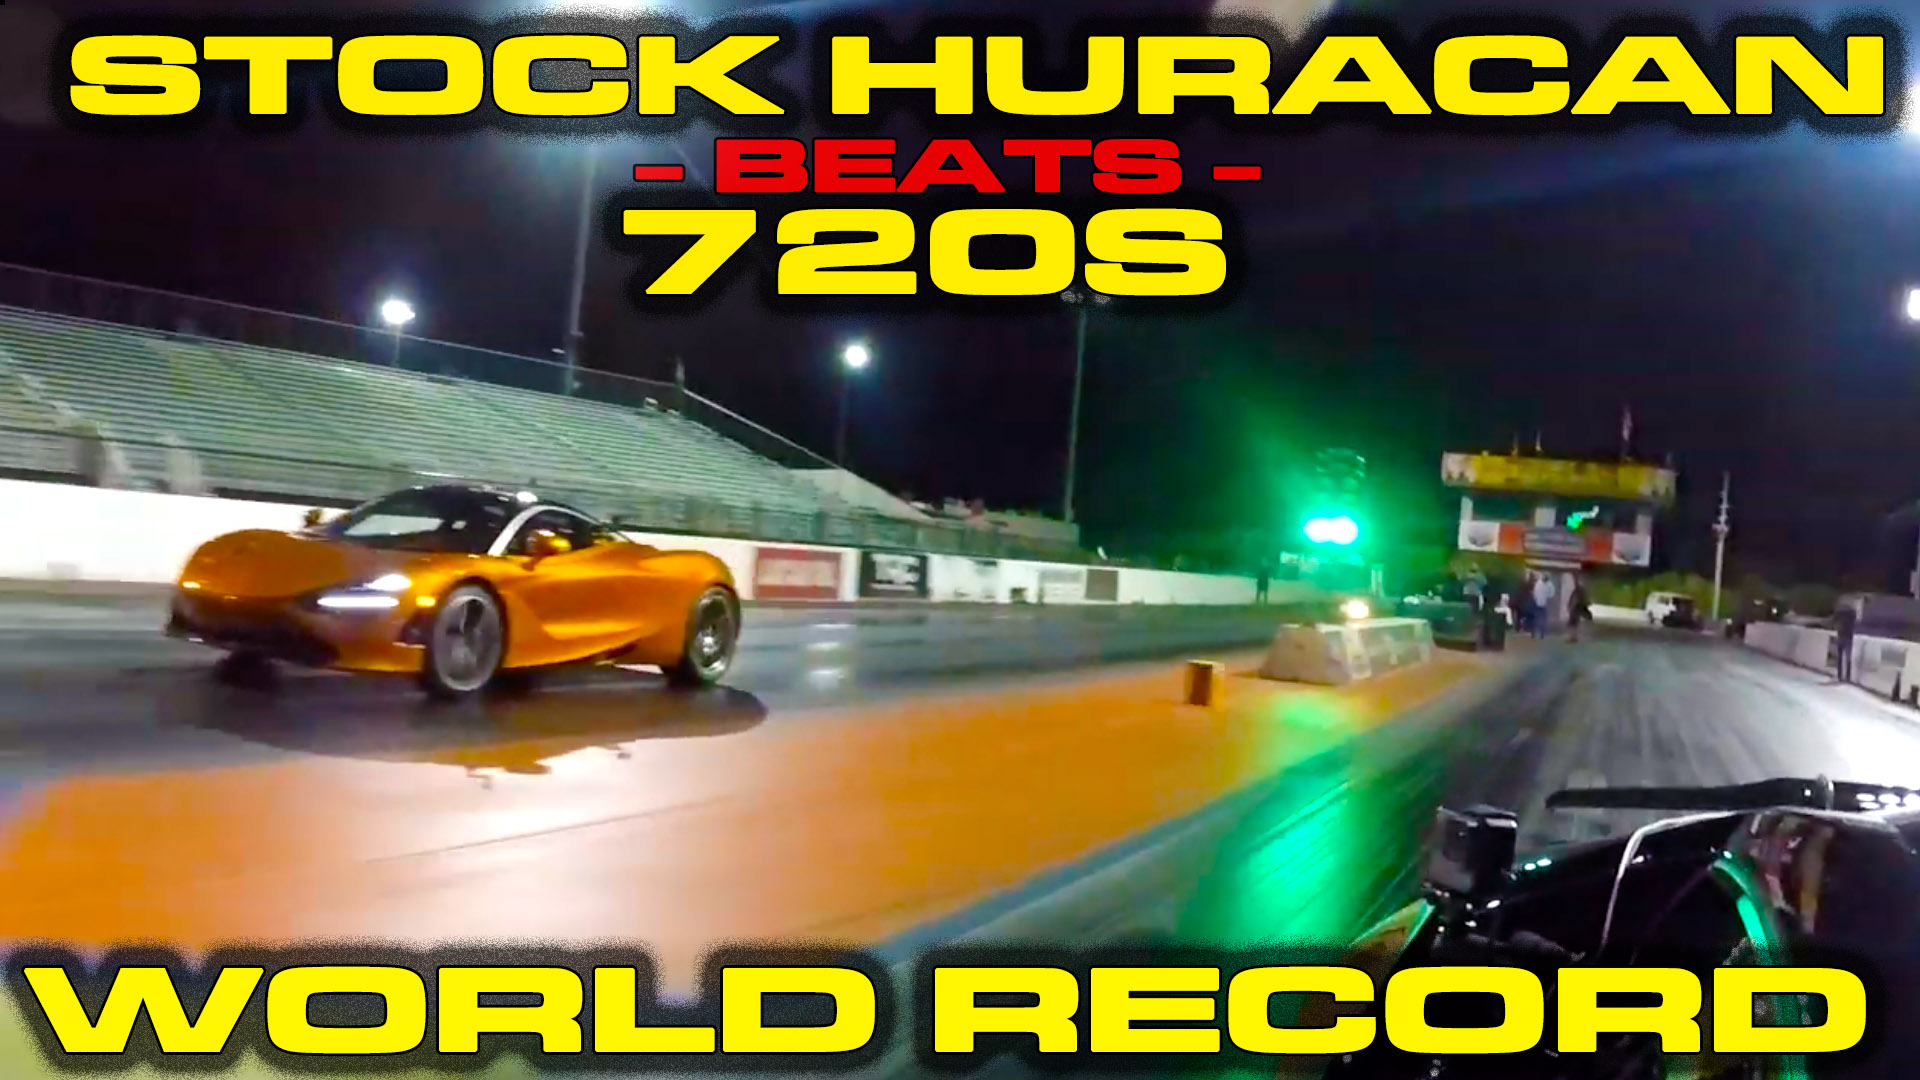 Huracan beast McLaren 720S in a Drag Race Brooks Weisblat